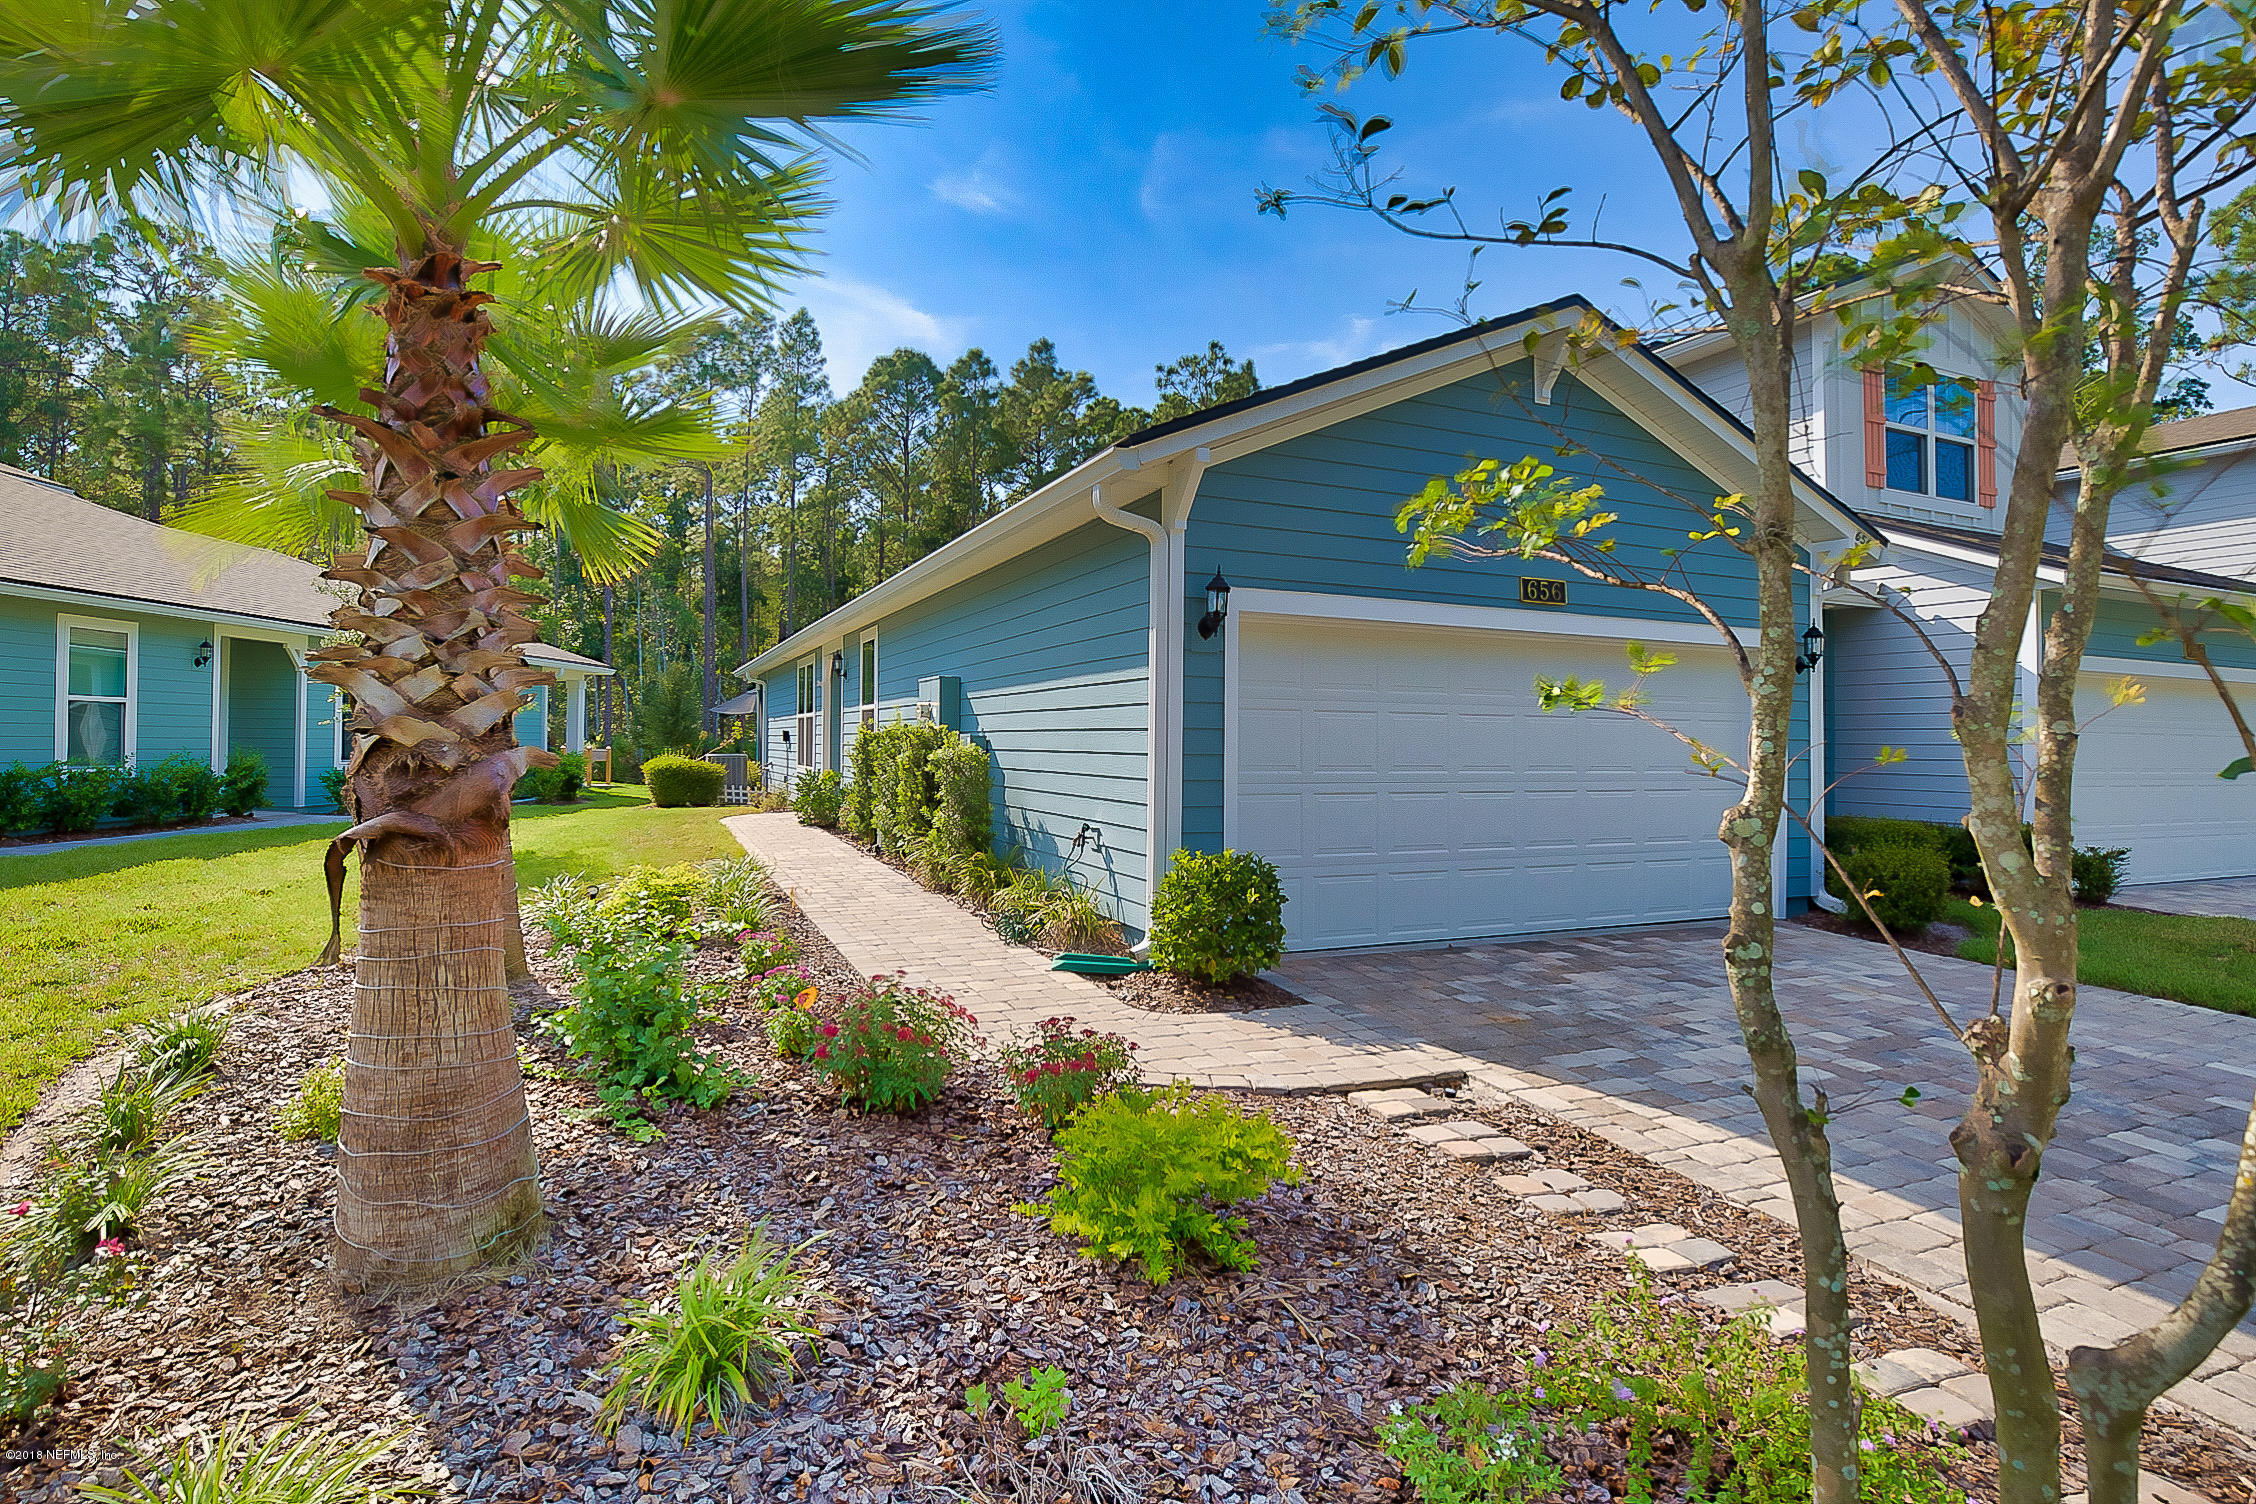 656 COCONUT PALM, PONTE VEDRA, FLORIDA 32081, 3 Bedrooms Bedrooms, ,2 BathroomsBathrooms,Residential - townhome,For sale,COCONUT PALM,960788